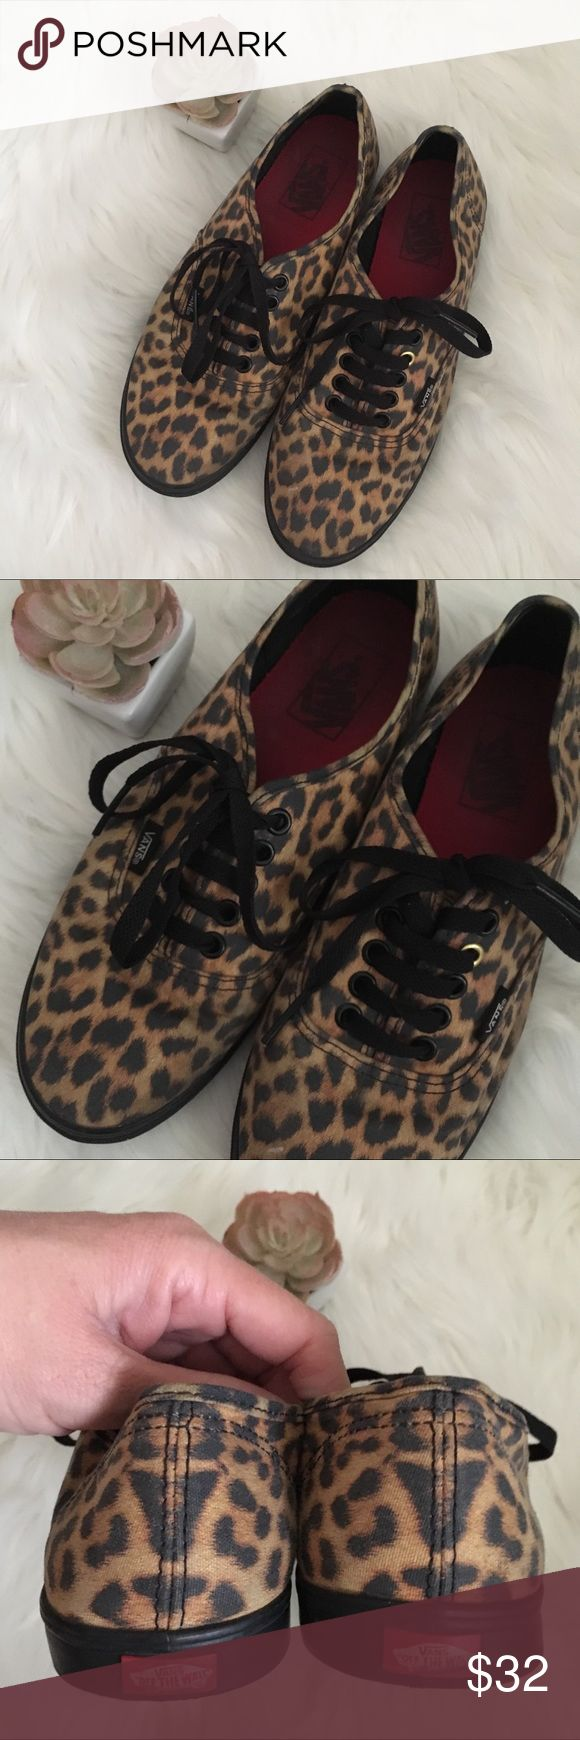 Cheetah / Leopard print vans women's size 8.5 Awesome animal print Vans Sneakers!  They are a Cheetah / Leopard print! Size 8.5 (women's) Good used condition overall! Worn, and show some wear. Creases by the toes. Insides have some dirt/wear. Backs have some wear and logos have been rubbed some. Vans Shoes Sneakers